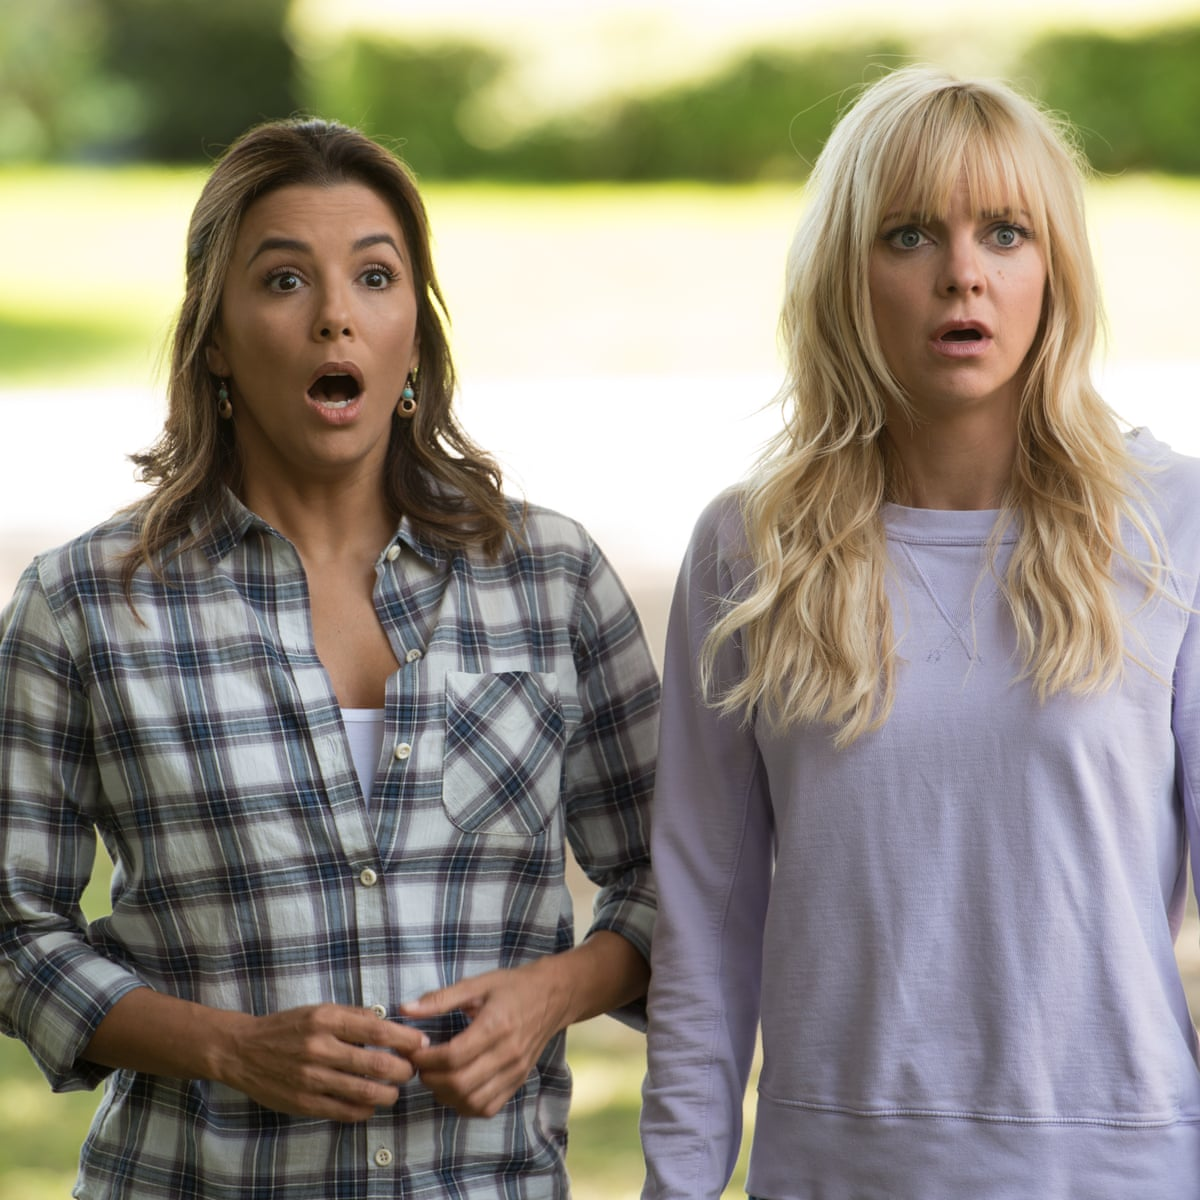 Overboard Review Anna Faris Comedy Caper Sinks Without Trace Romance Films The Guardian